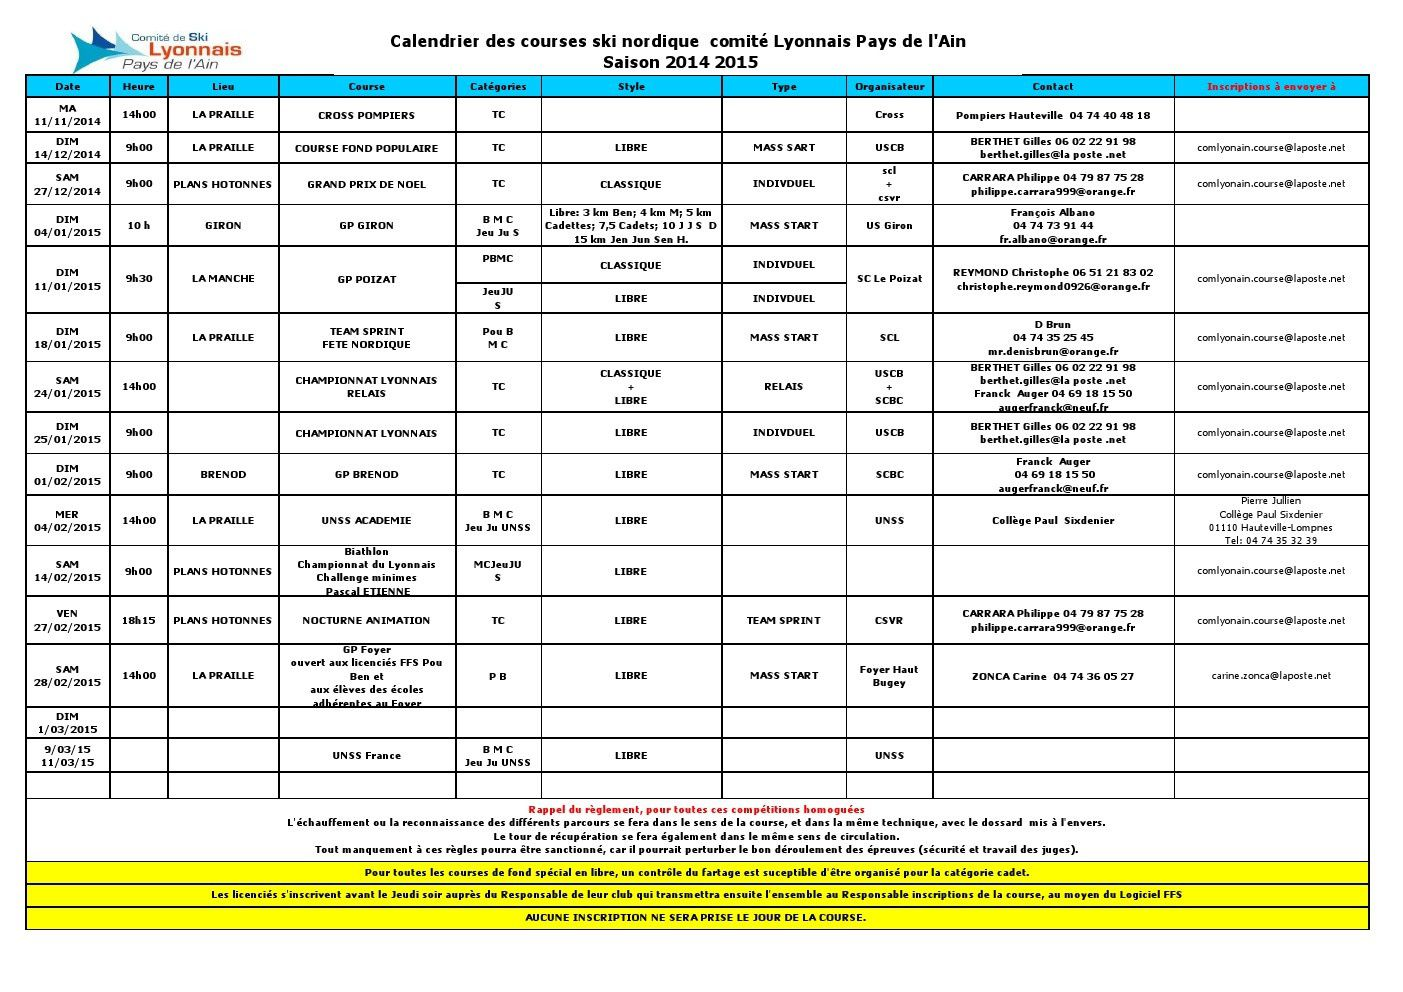 Calendrier courses 2014-2015.